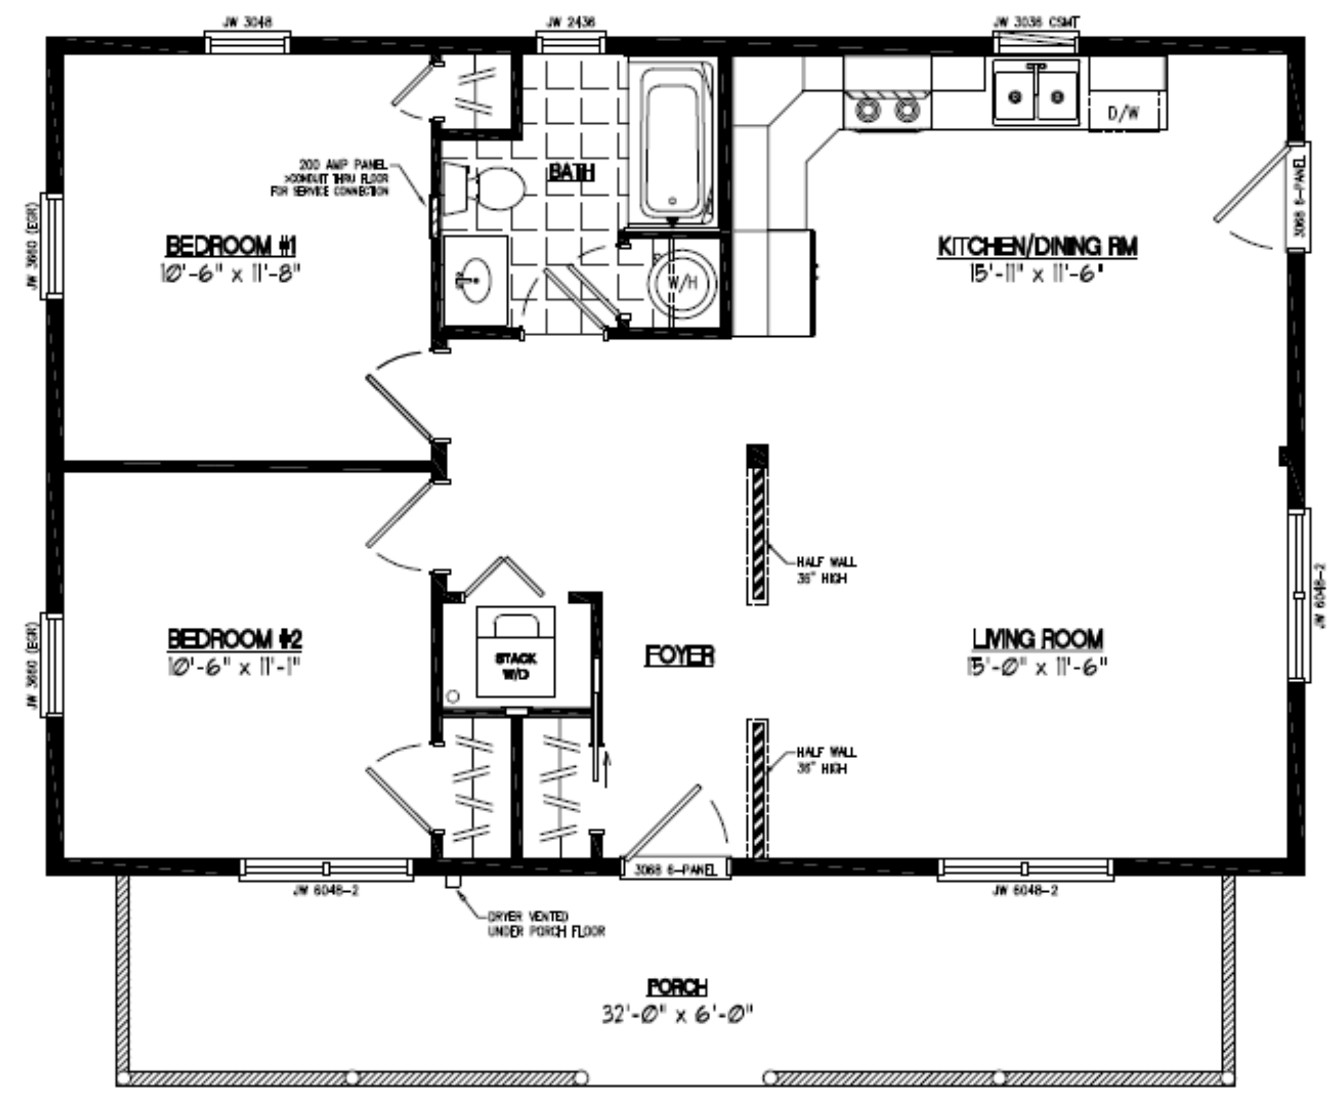 24 x 36 2 story house plans